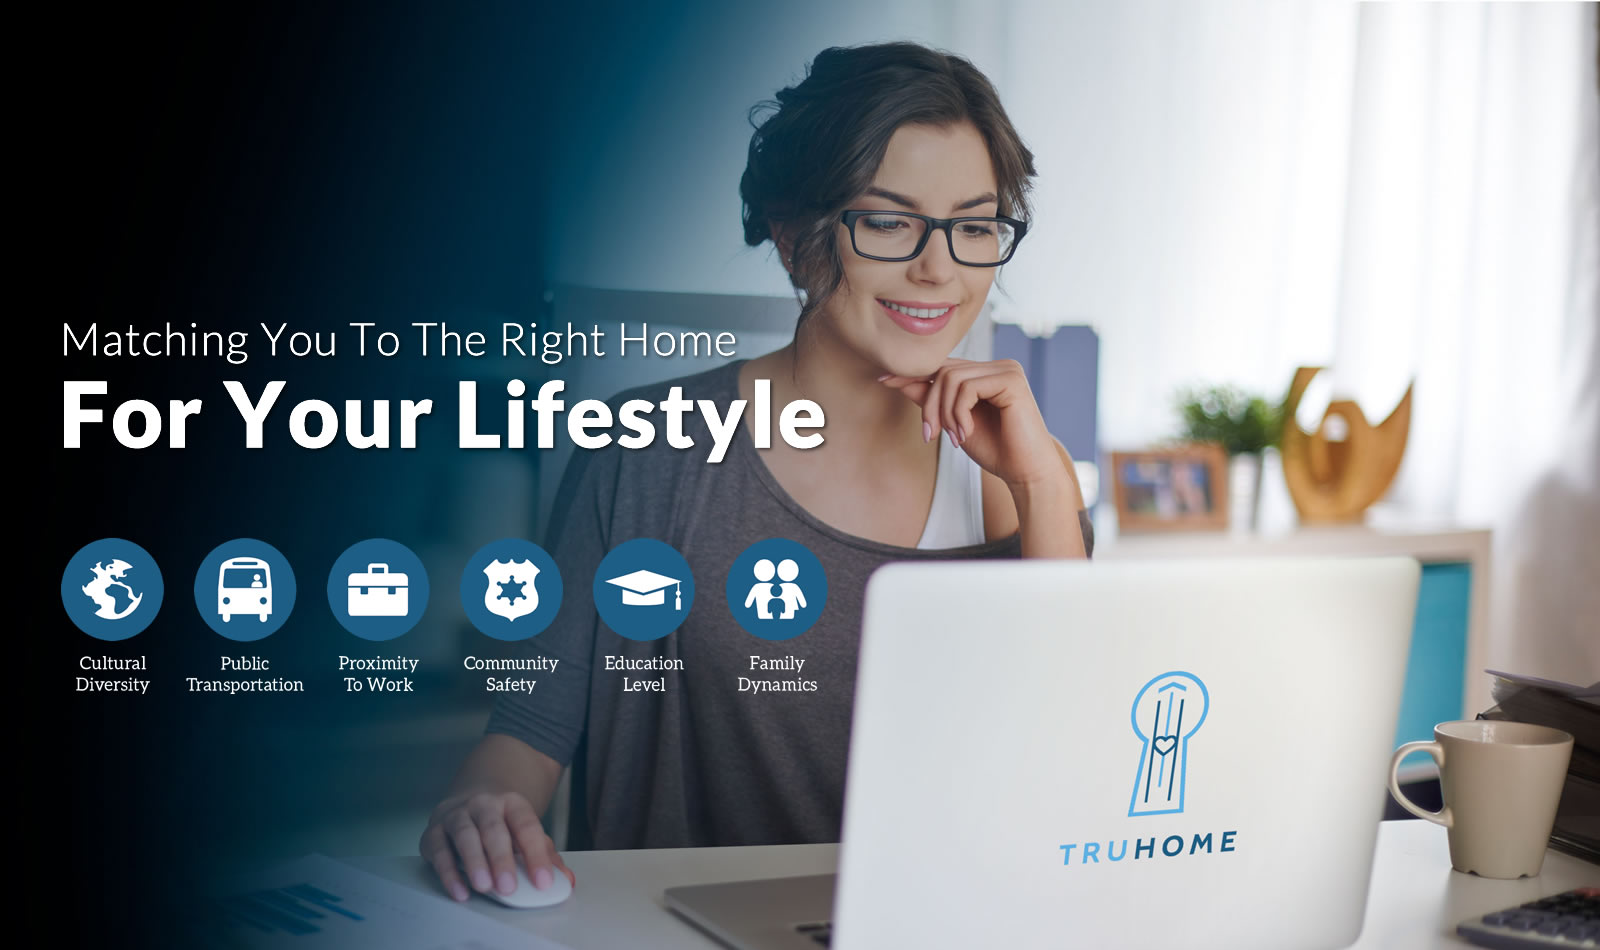 AT TRUEHOME